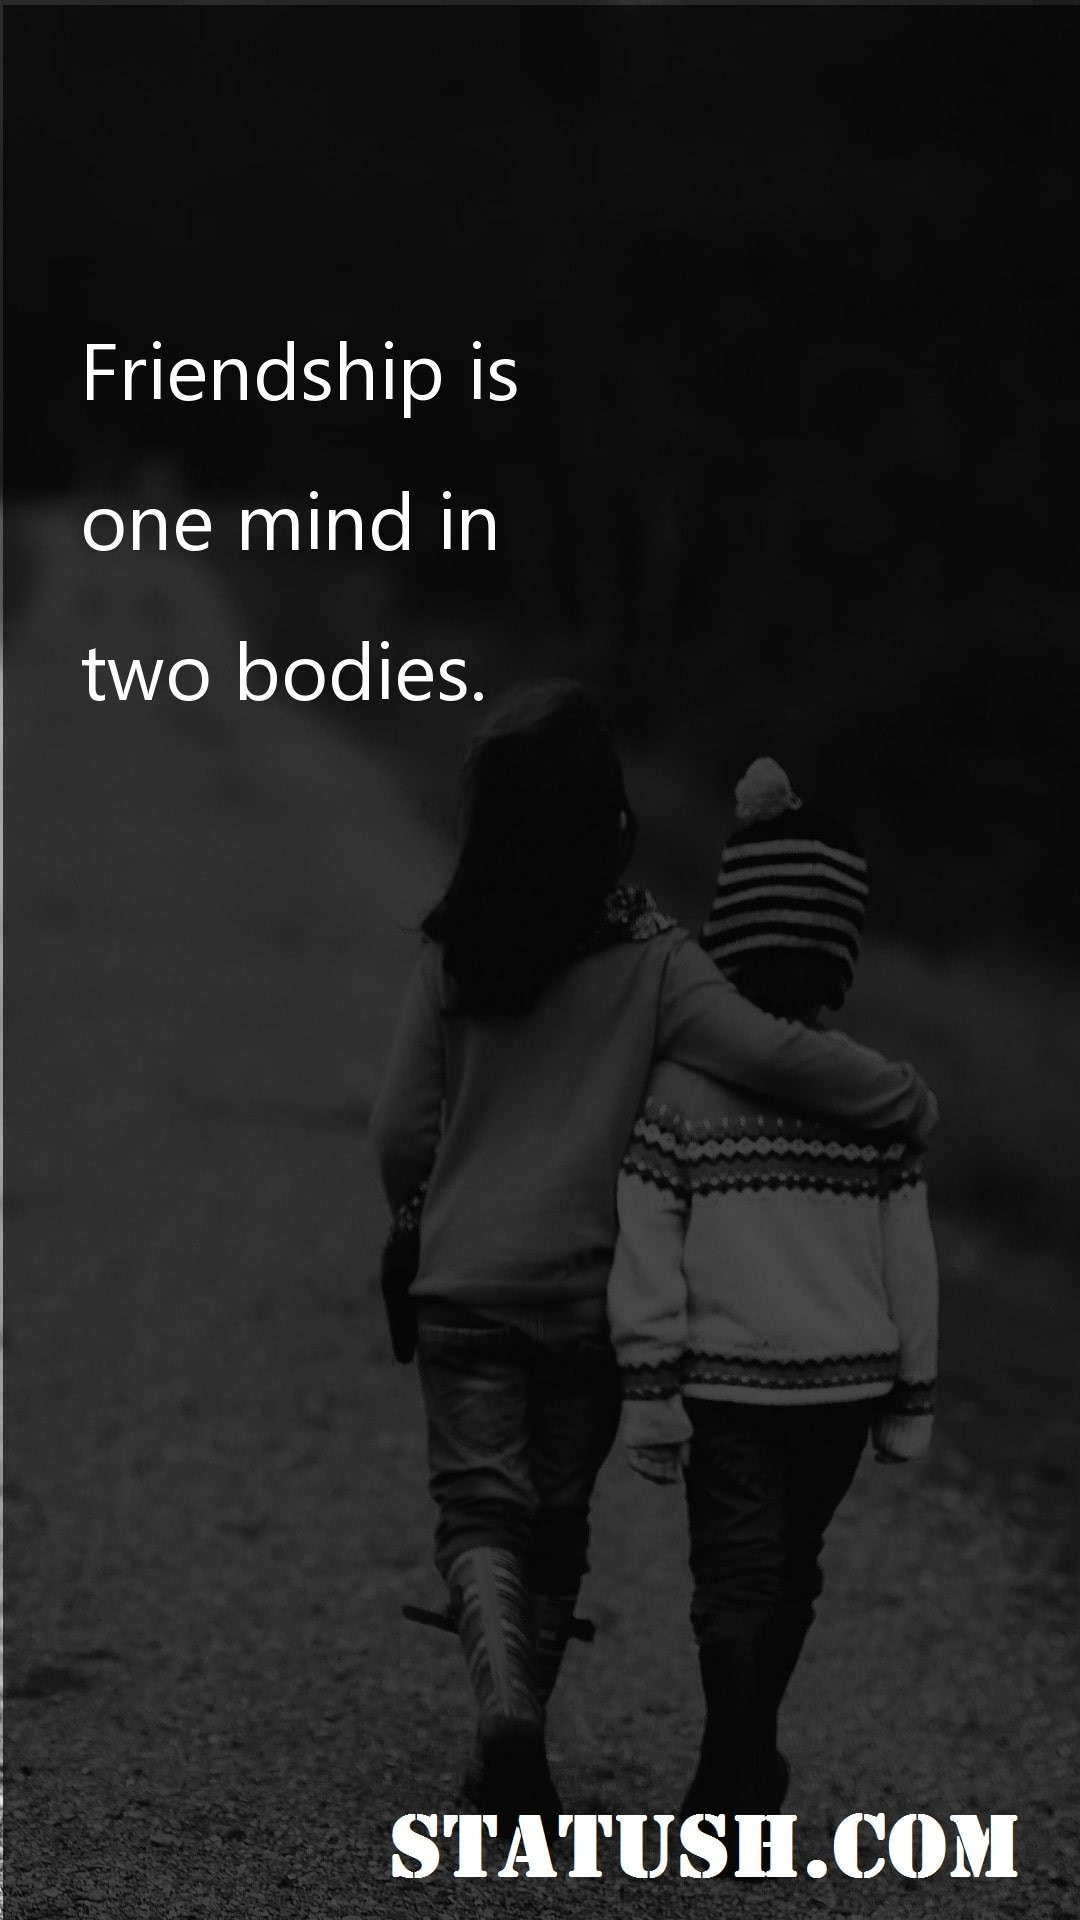 Friendship is one mind in two bodies